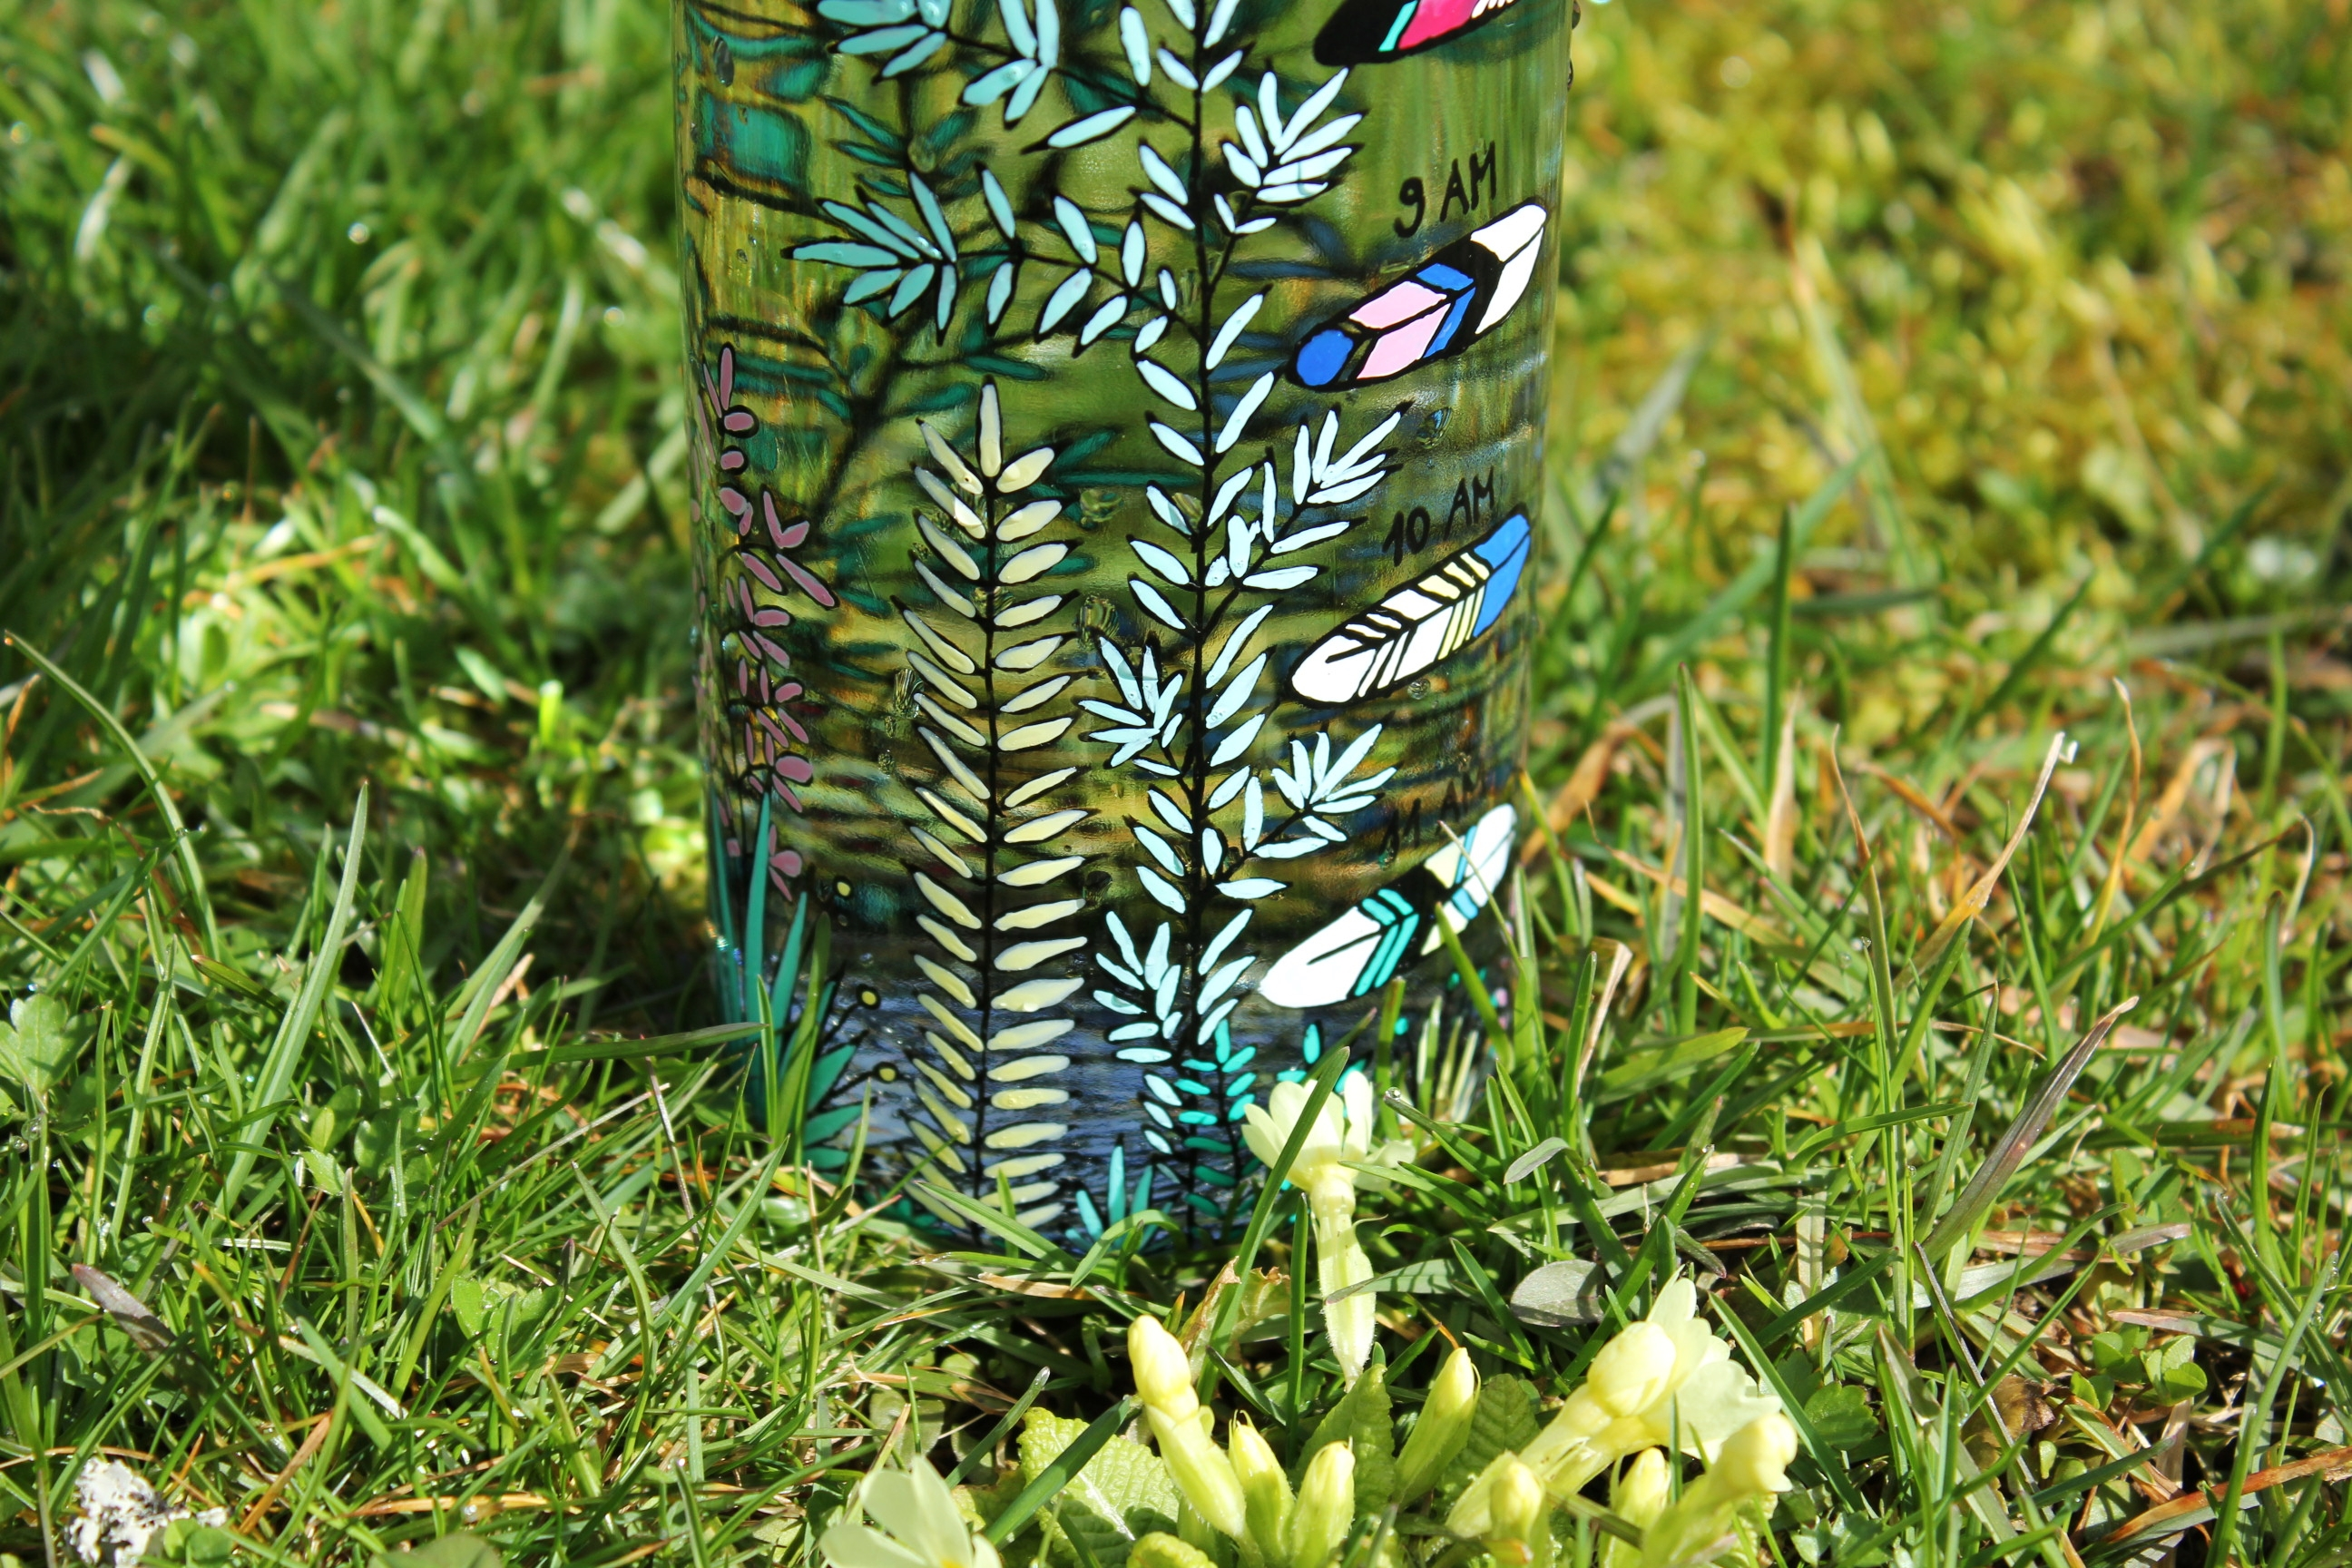 stay hydrated water bottle glass, Etsy finds, etsy store shewolfka, feathers tribe, tribal native water bottle online store, hand painted illustration, handmade plants nature drawing